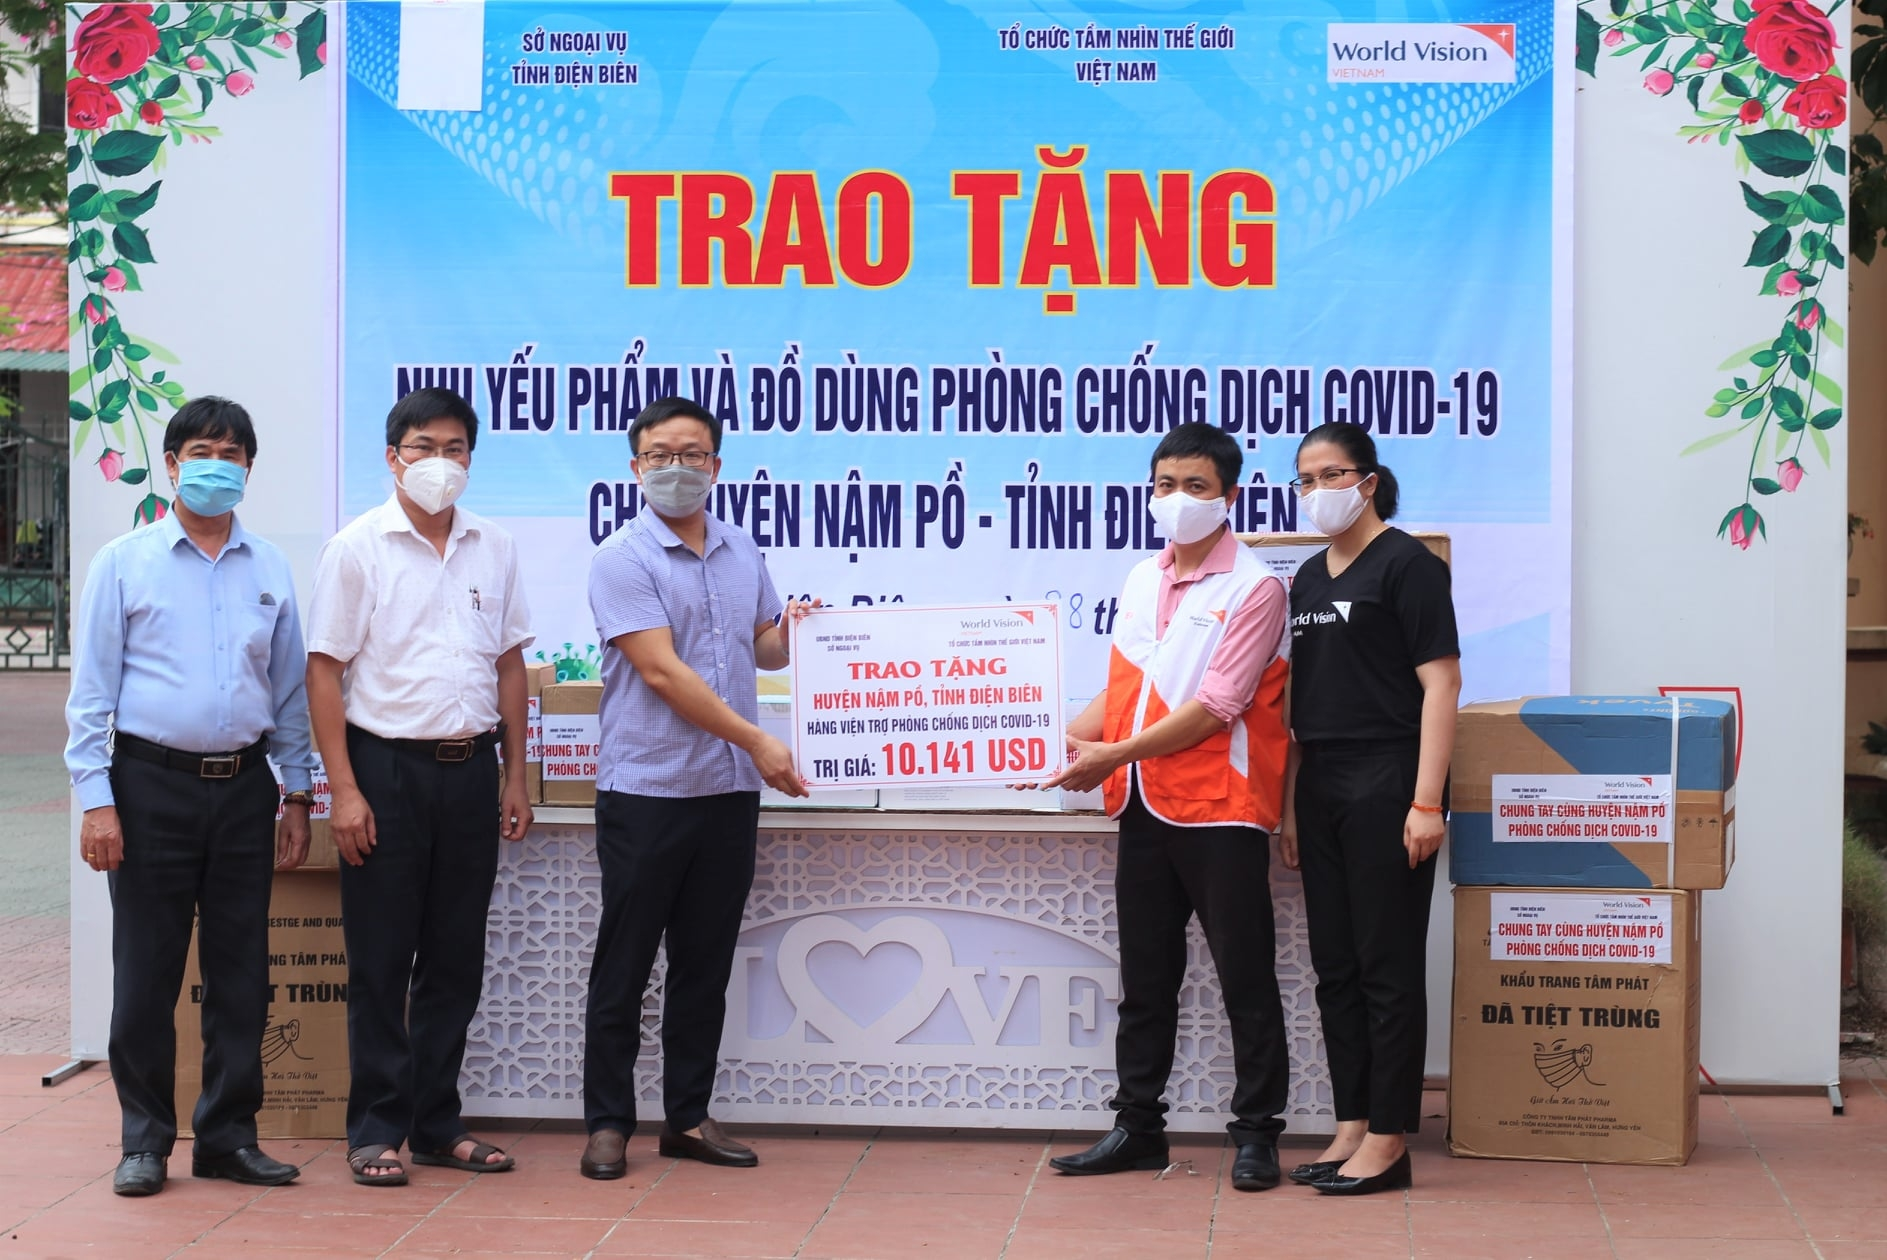 NGO joins in COVID-19 combat efforts